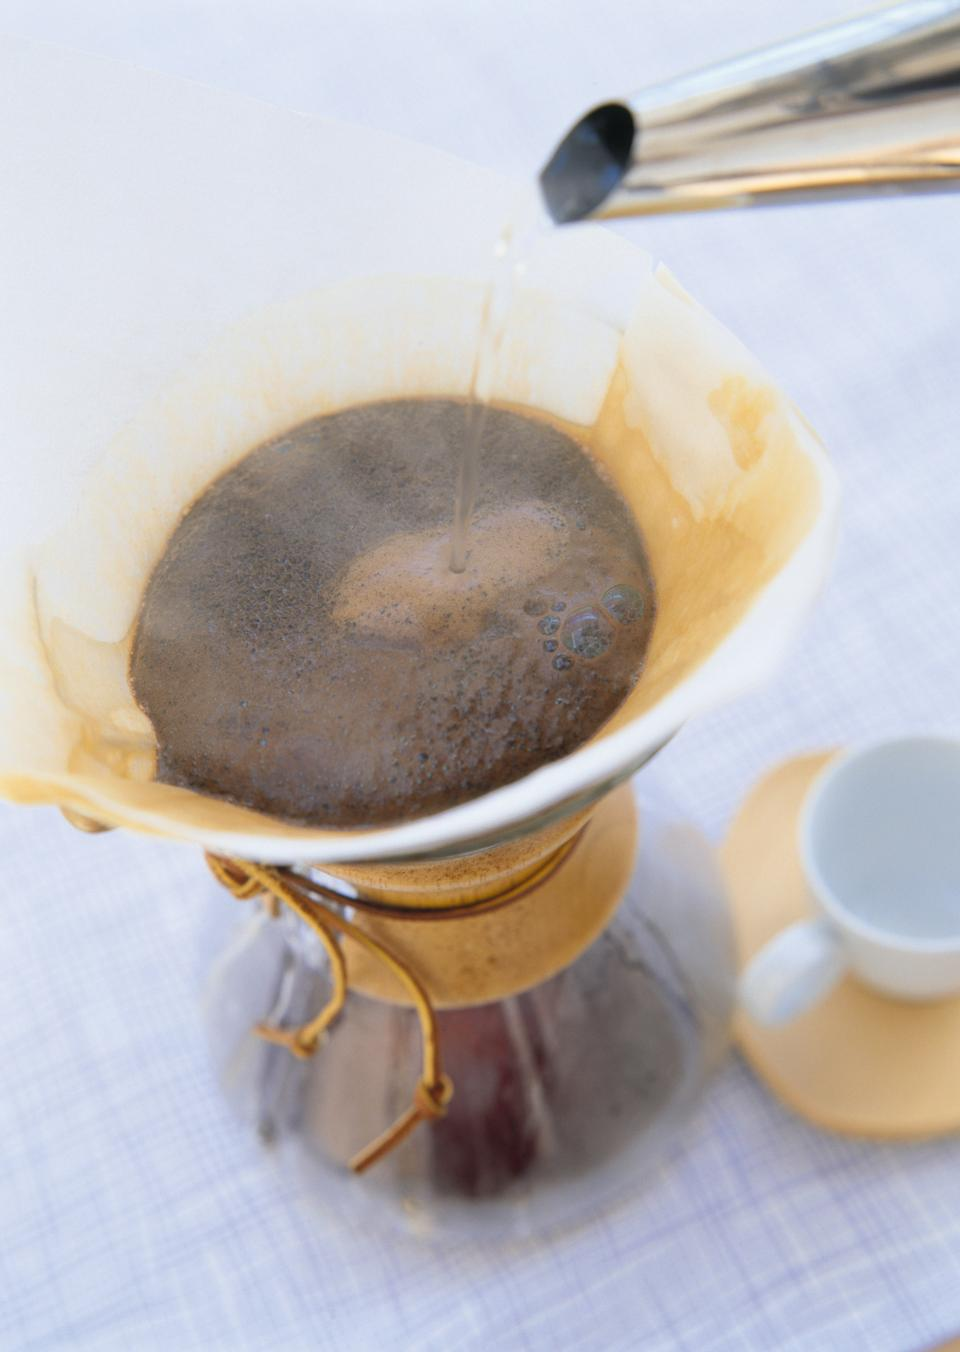 Making brewed arabica coffee from steaming filter drip style